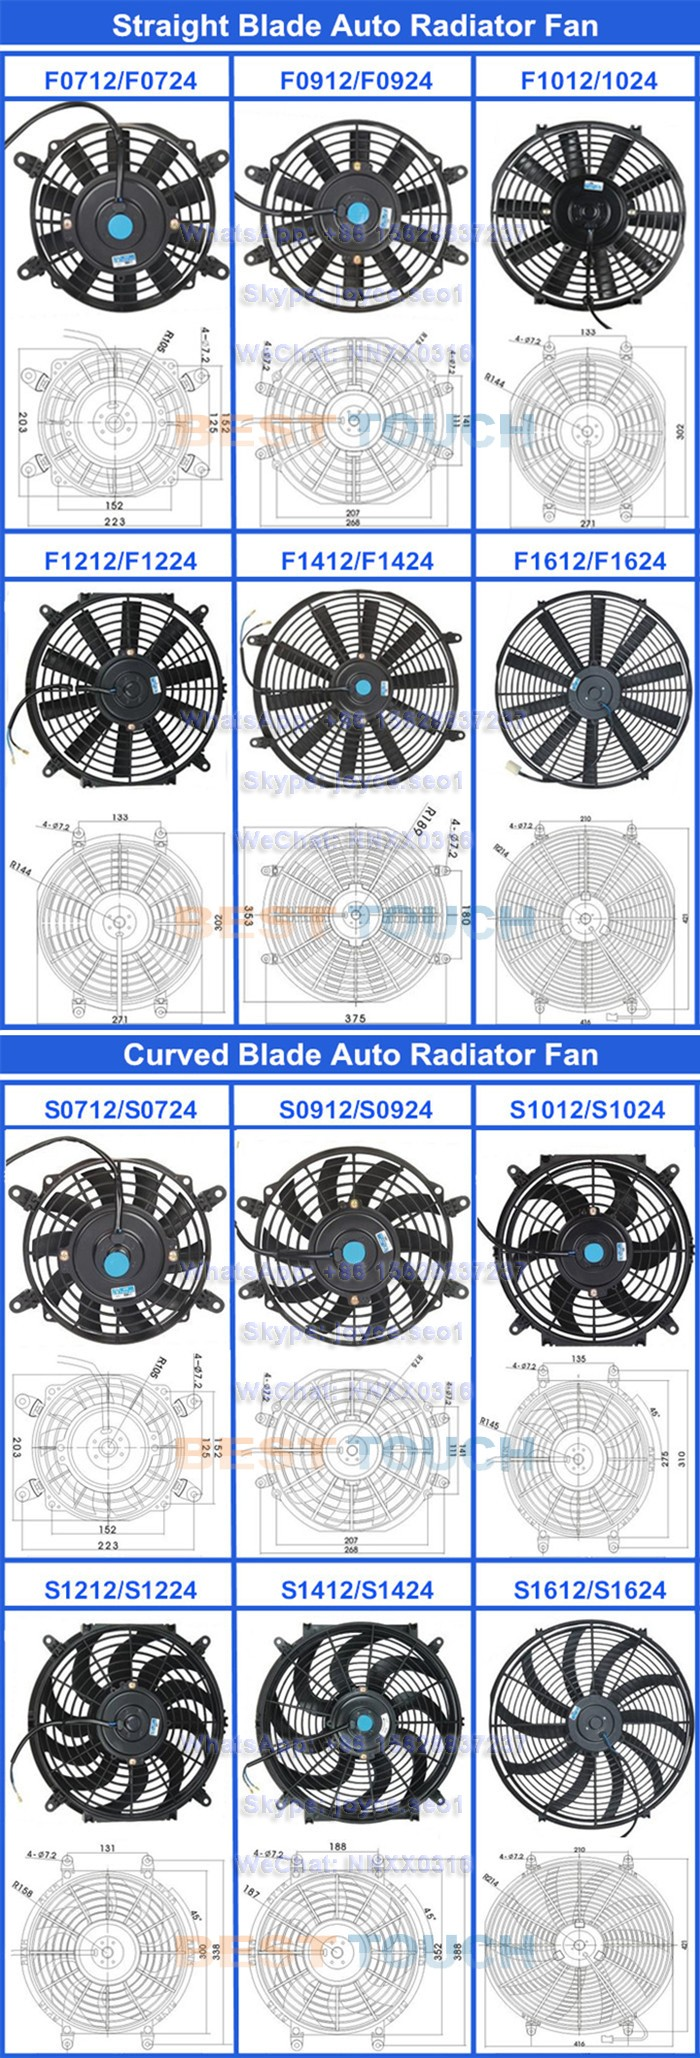 universal-auto-electric-cooling-radiator-fan-for-car.jpg